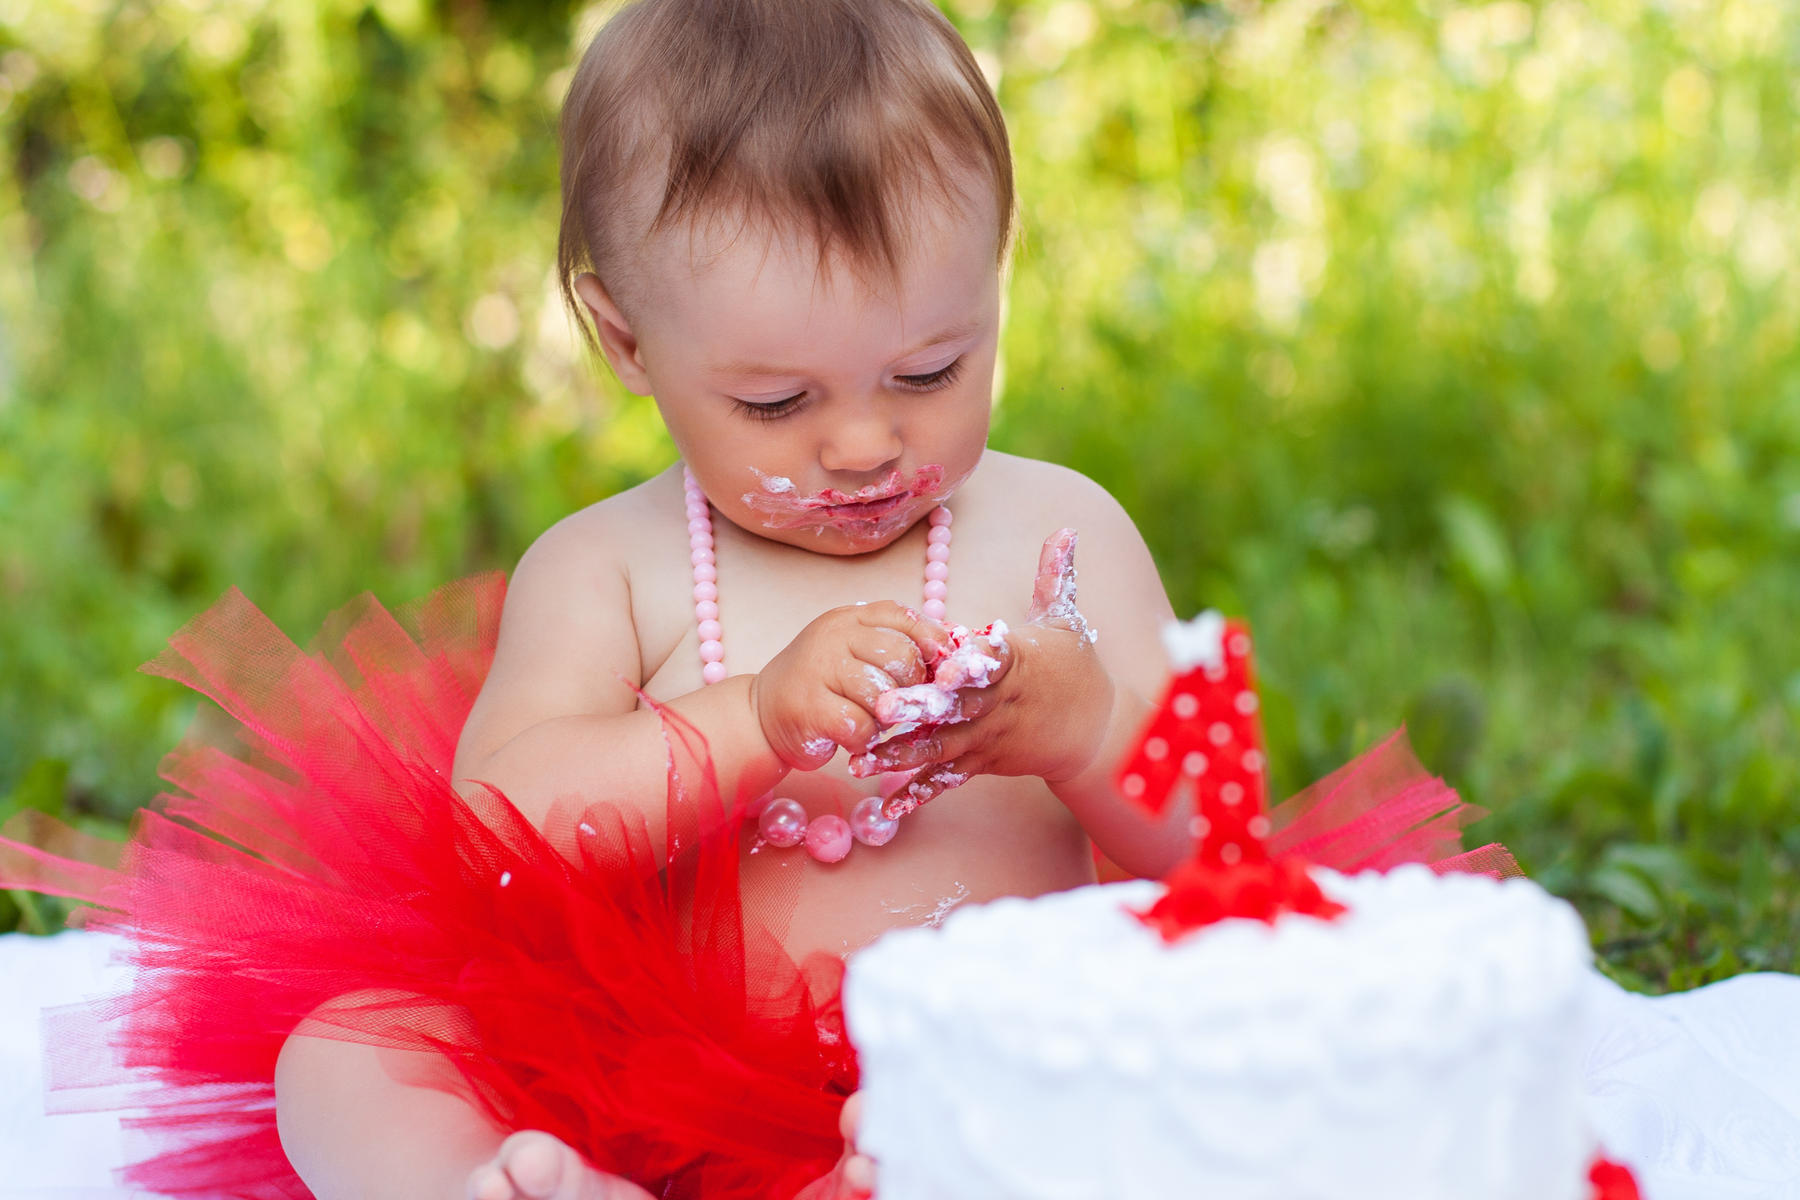 Toddler in Red Tutu Eating Cake